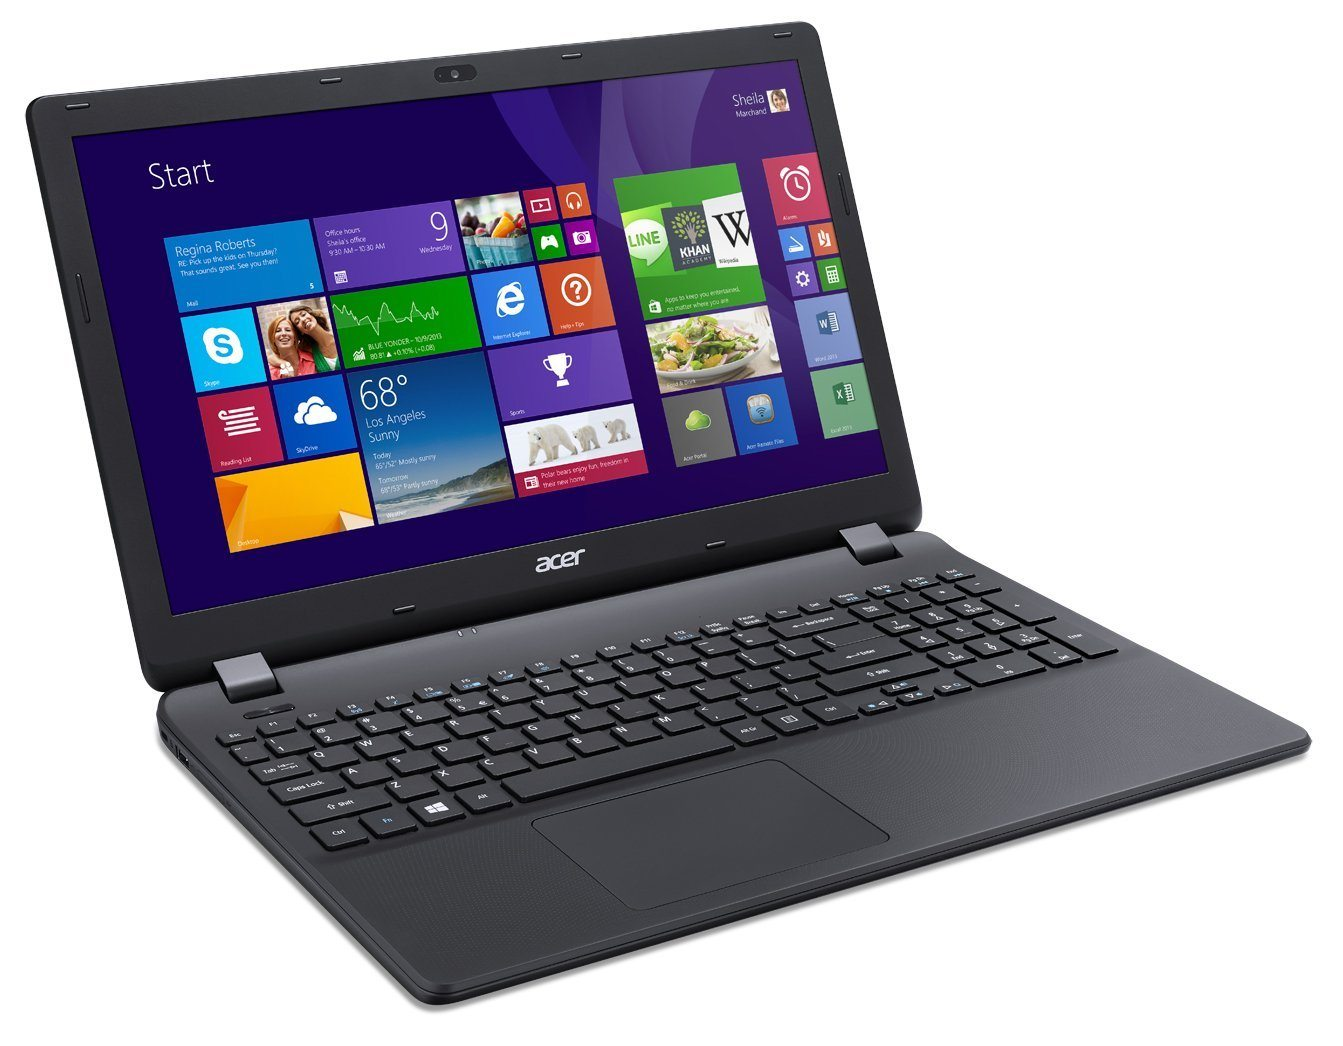 "Acer Aspire ES1-512-P8VK - Portátil de 15.6"" (Intel Pentium N3540, 4 GB de RAM, 500 GB, Intel HD Graphics, Windows 8.1), negro -Teclado QWERTY Italiano (importado)"